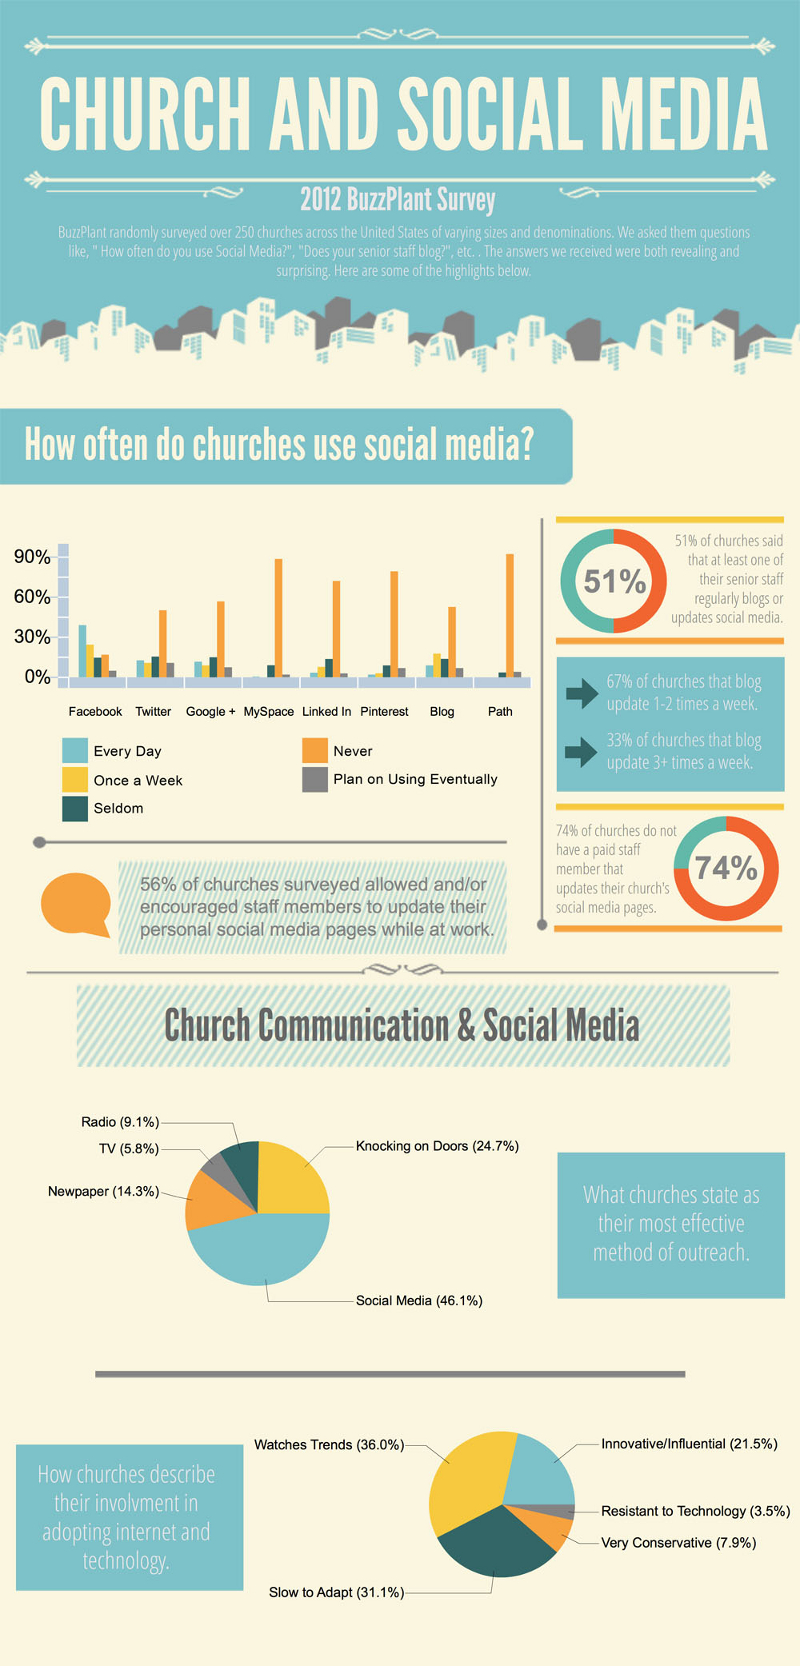 Church Marketing in Social Media